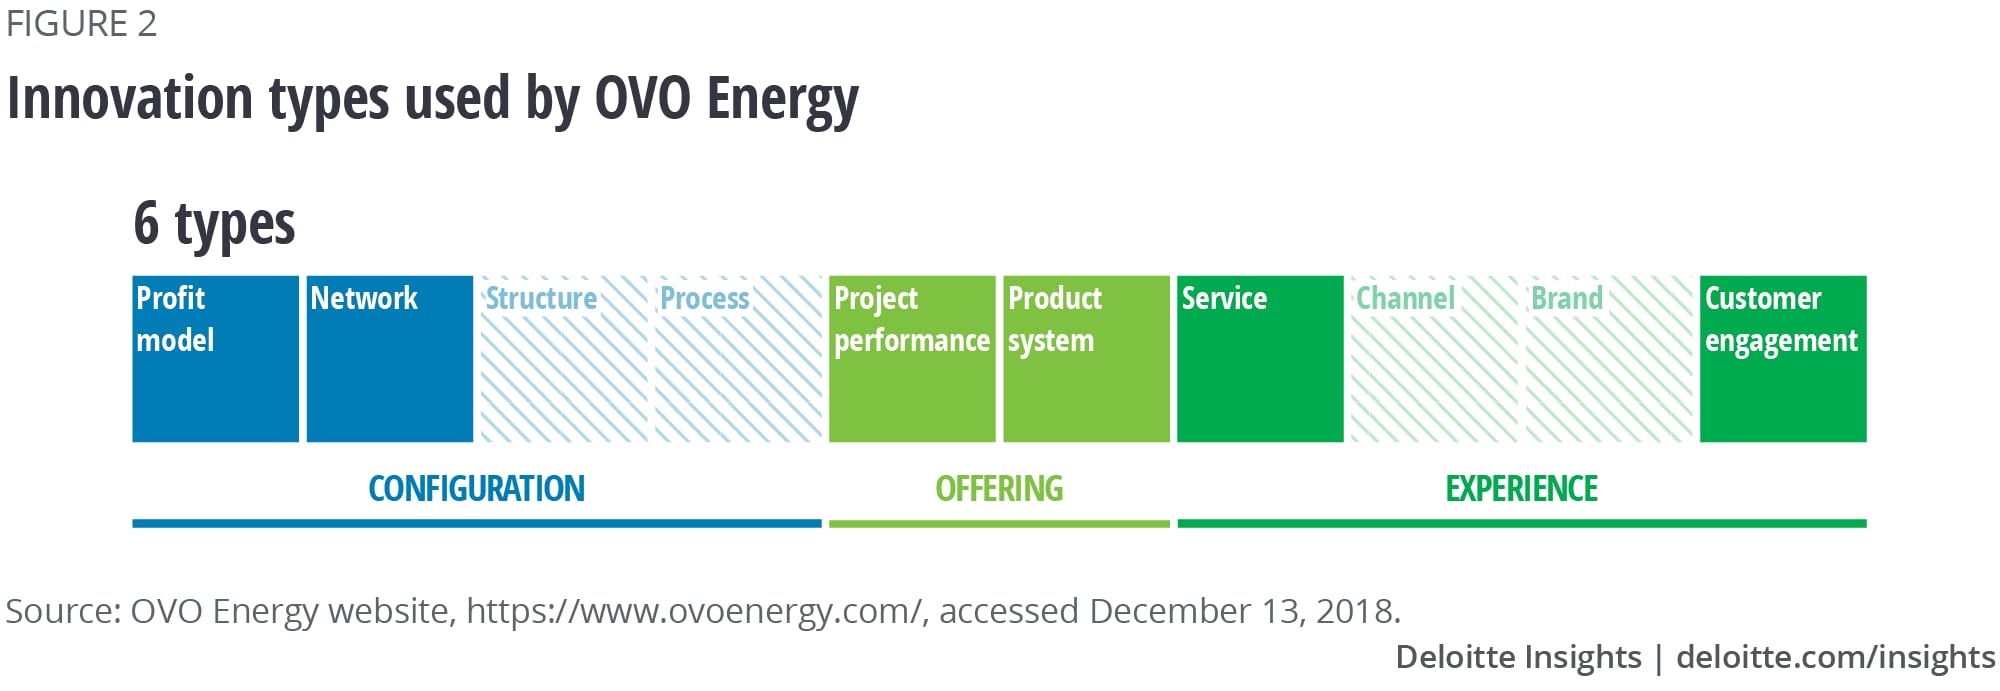 Innovation types used by OVO Energy